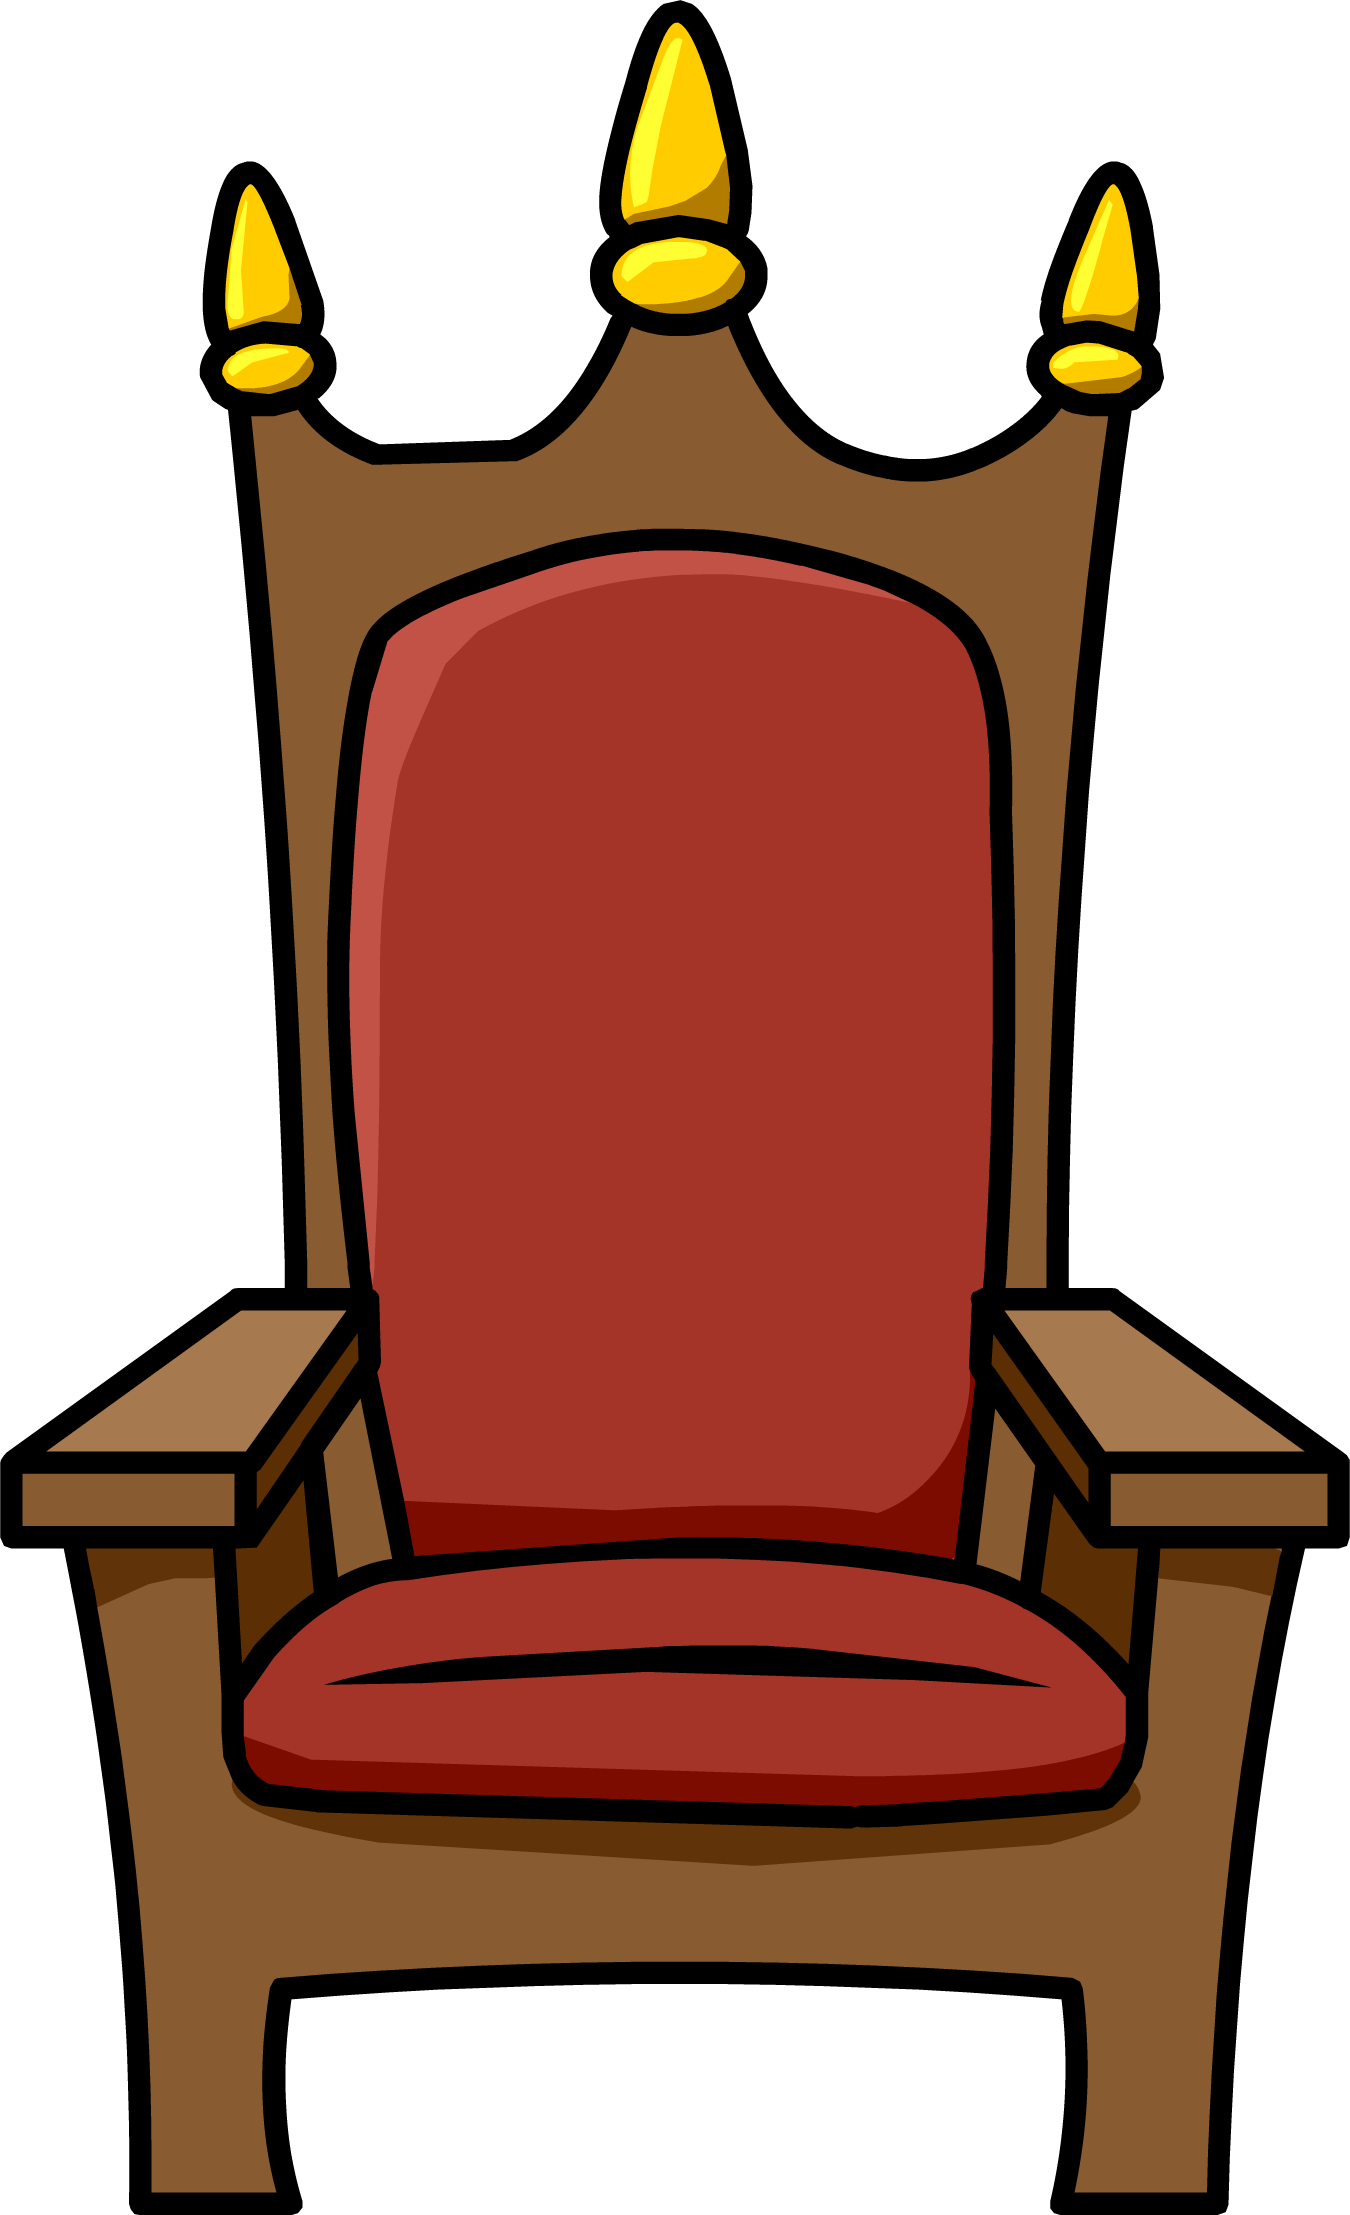 Throne images clipart jpg transparent Queen on throne clipart » Clipart Portal jpg transparent